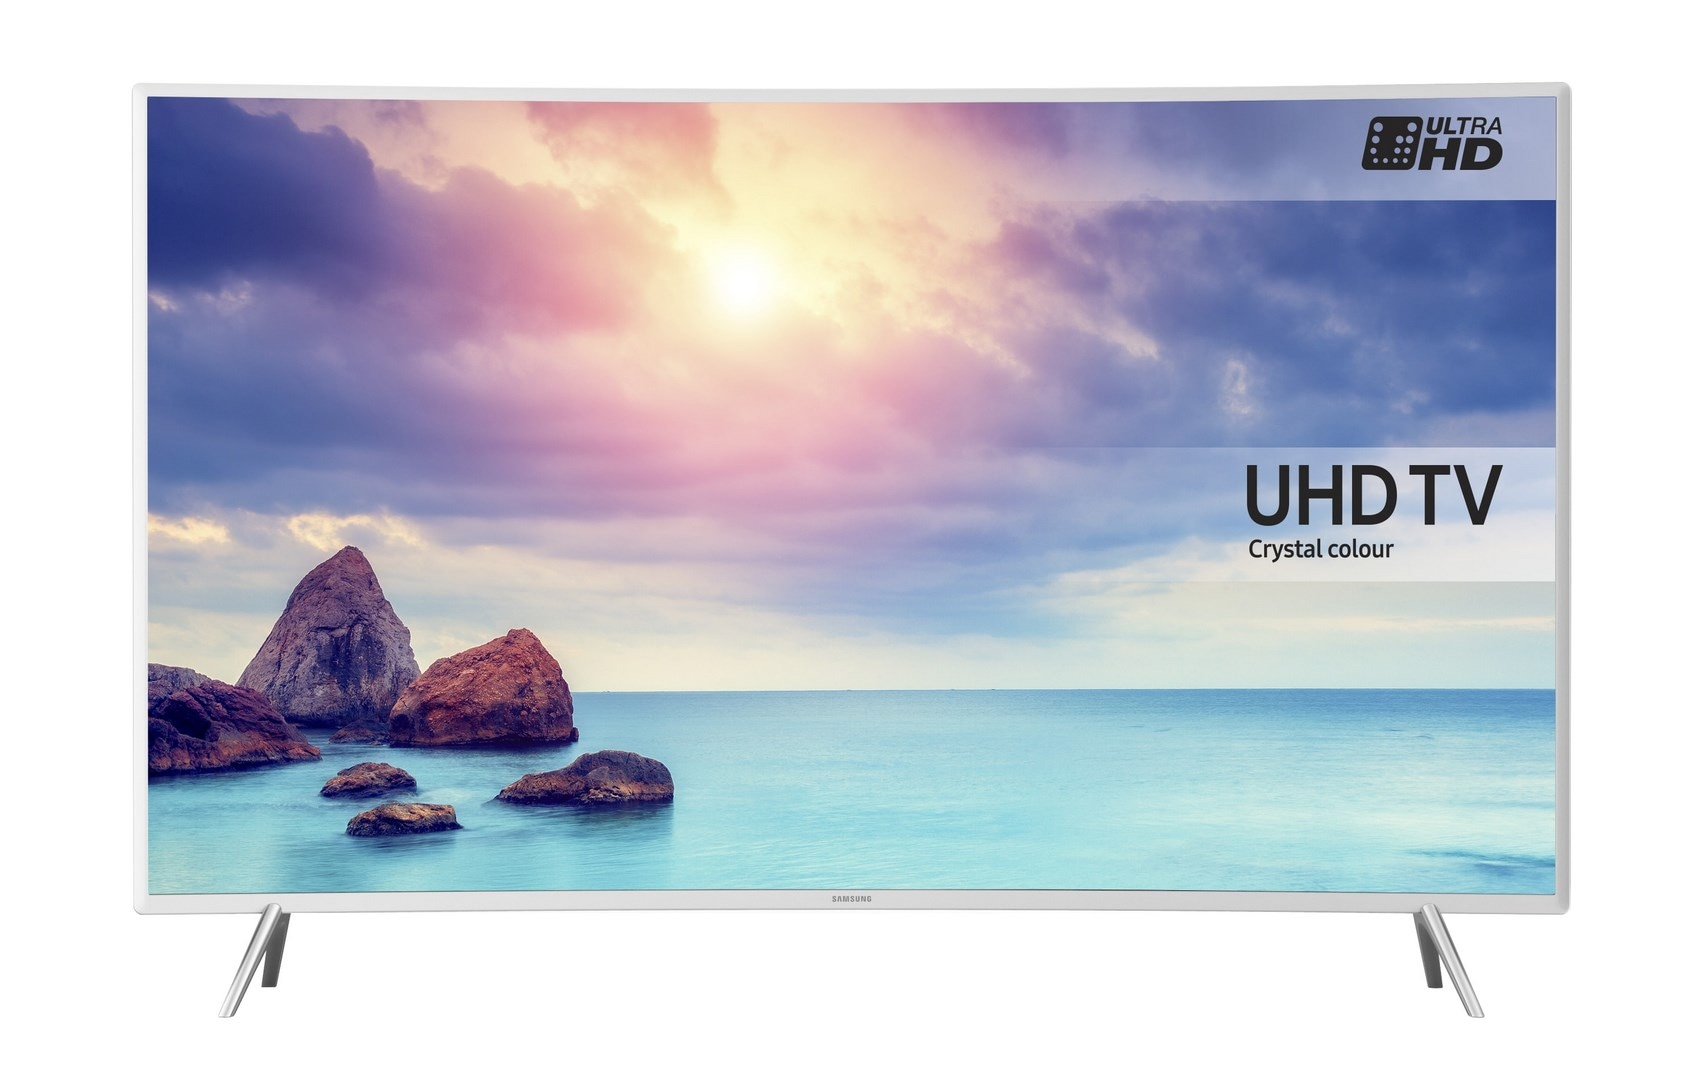 6-Series Curved Crystal Color UHD TV UE43KU6510